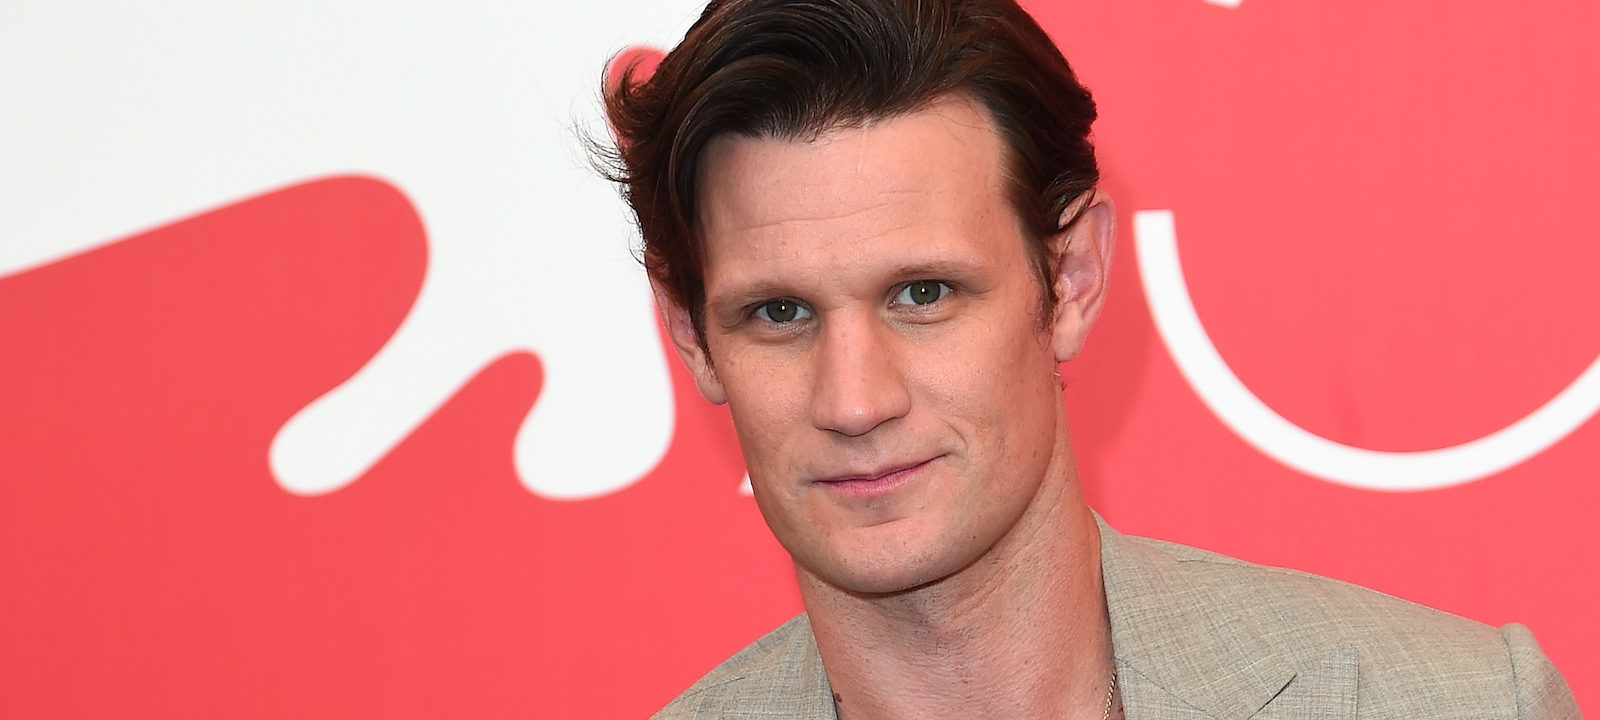 Matt Smith attends 'Charlie Says' photocall during the 75th Venice Film Festival at Sala Casino on September 2, 2018 in Venice, Italy.